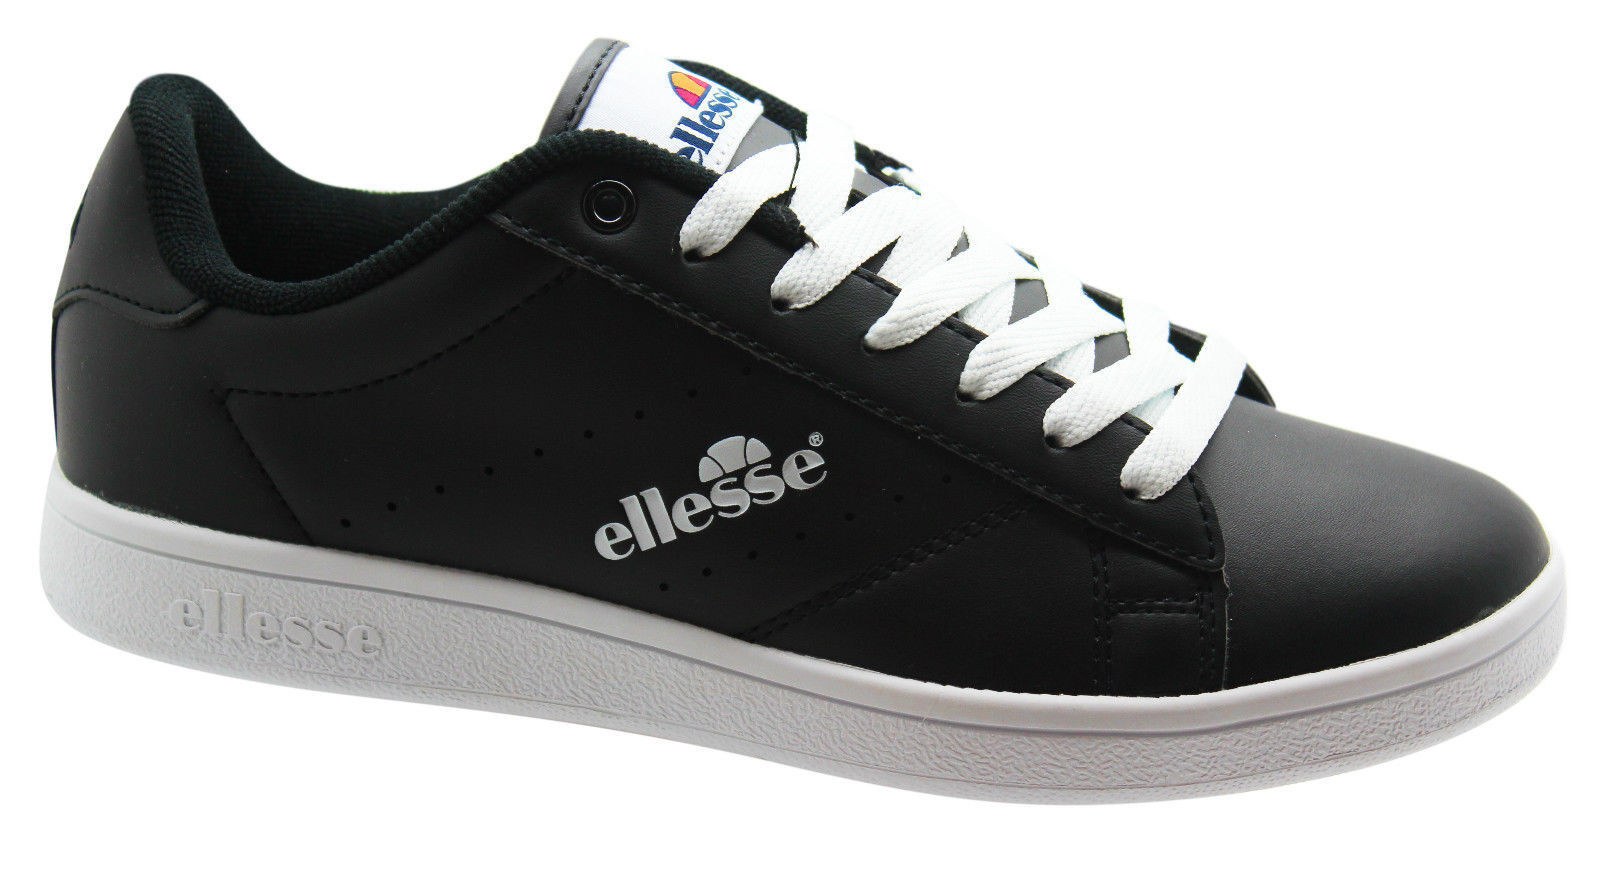 ELLESSE ANZIA LOW, BLACK WHITE UK SIZES 7.5 - 10.5 BNWB